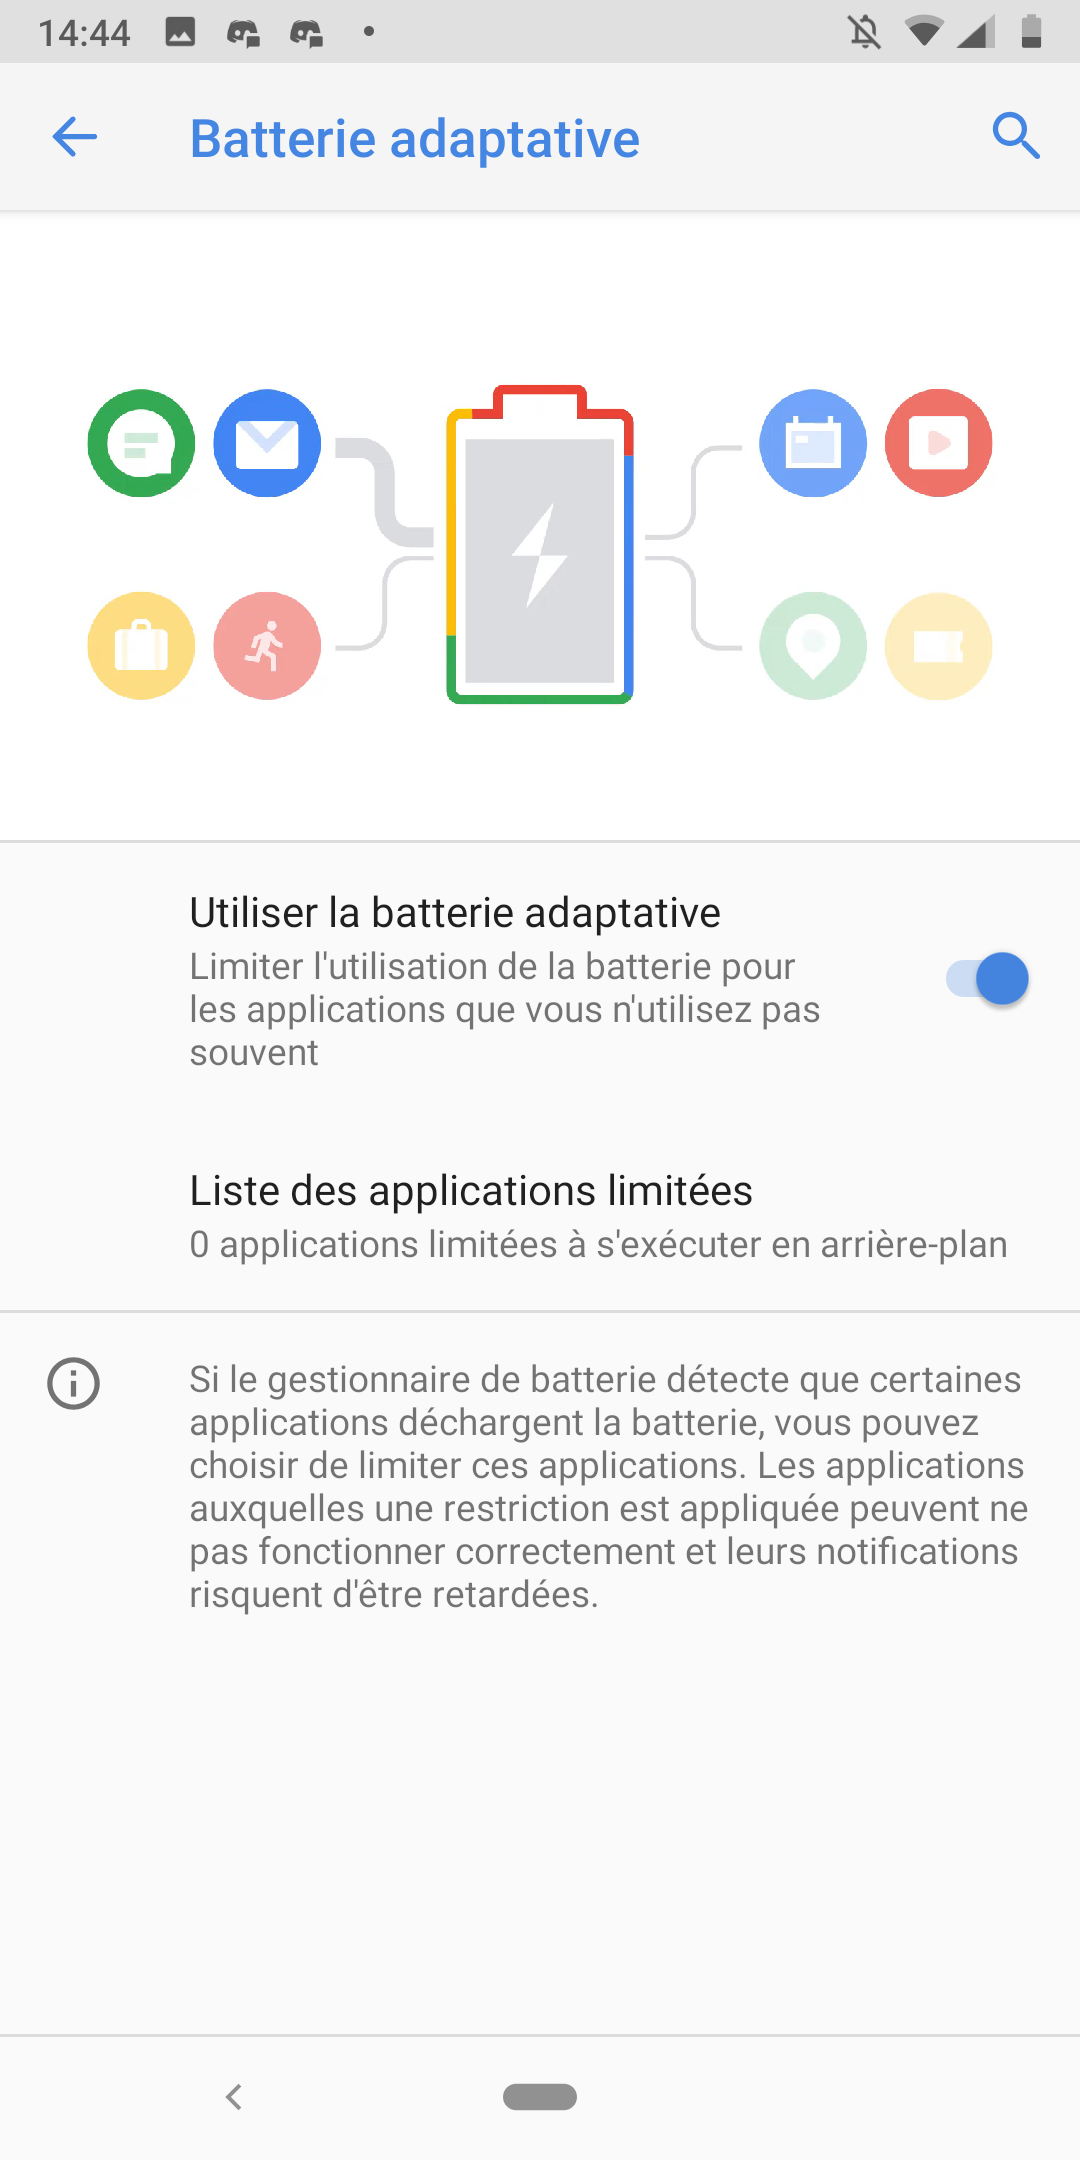 Android 9.0 Pie batterie adaptative